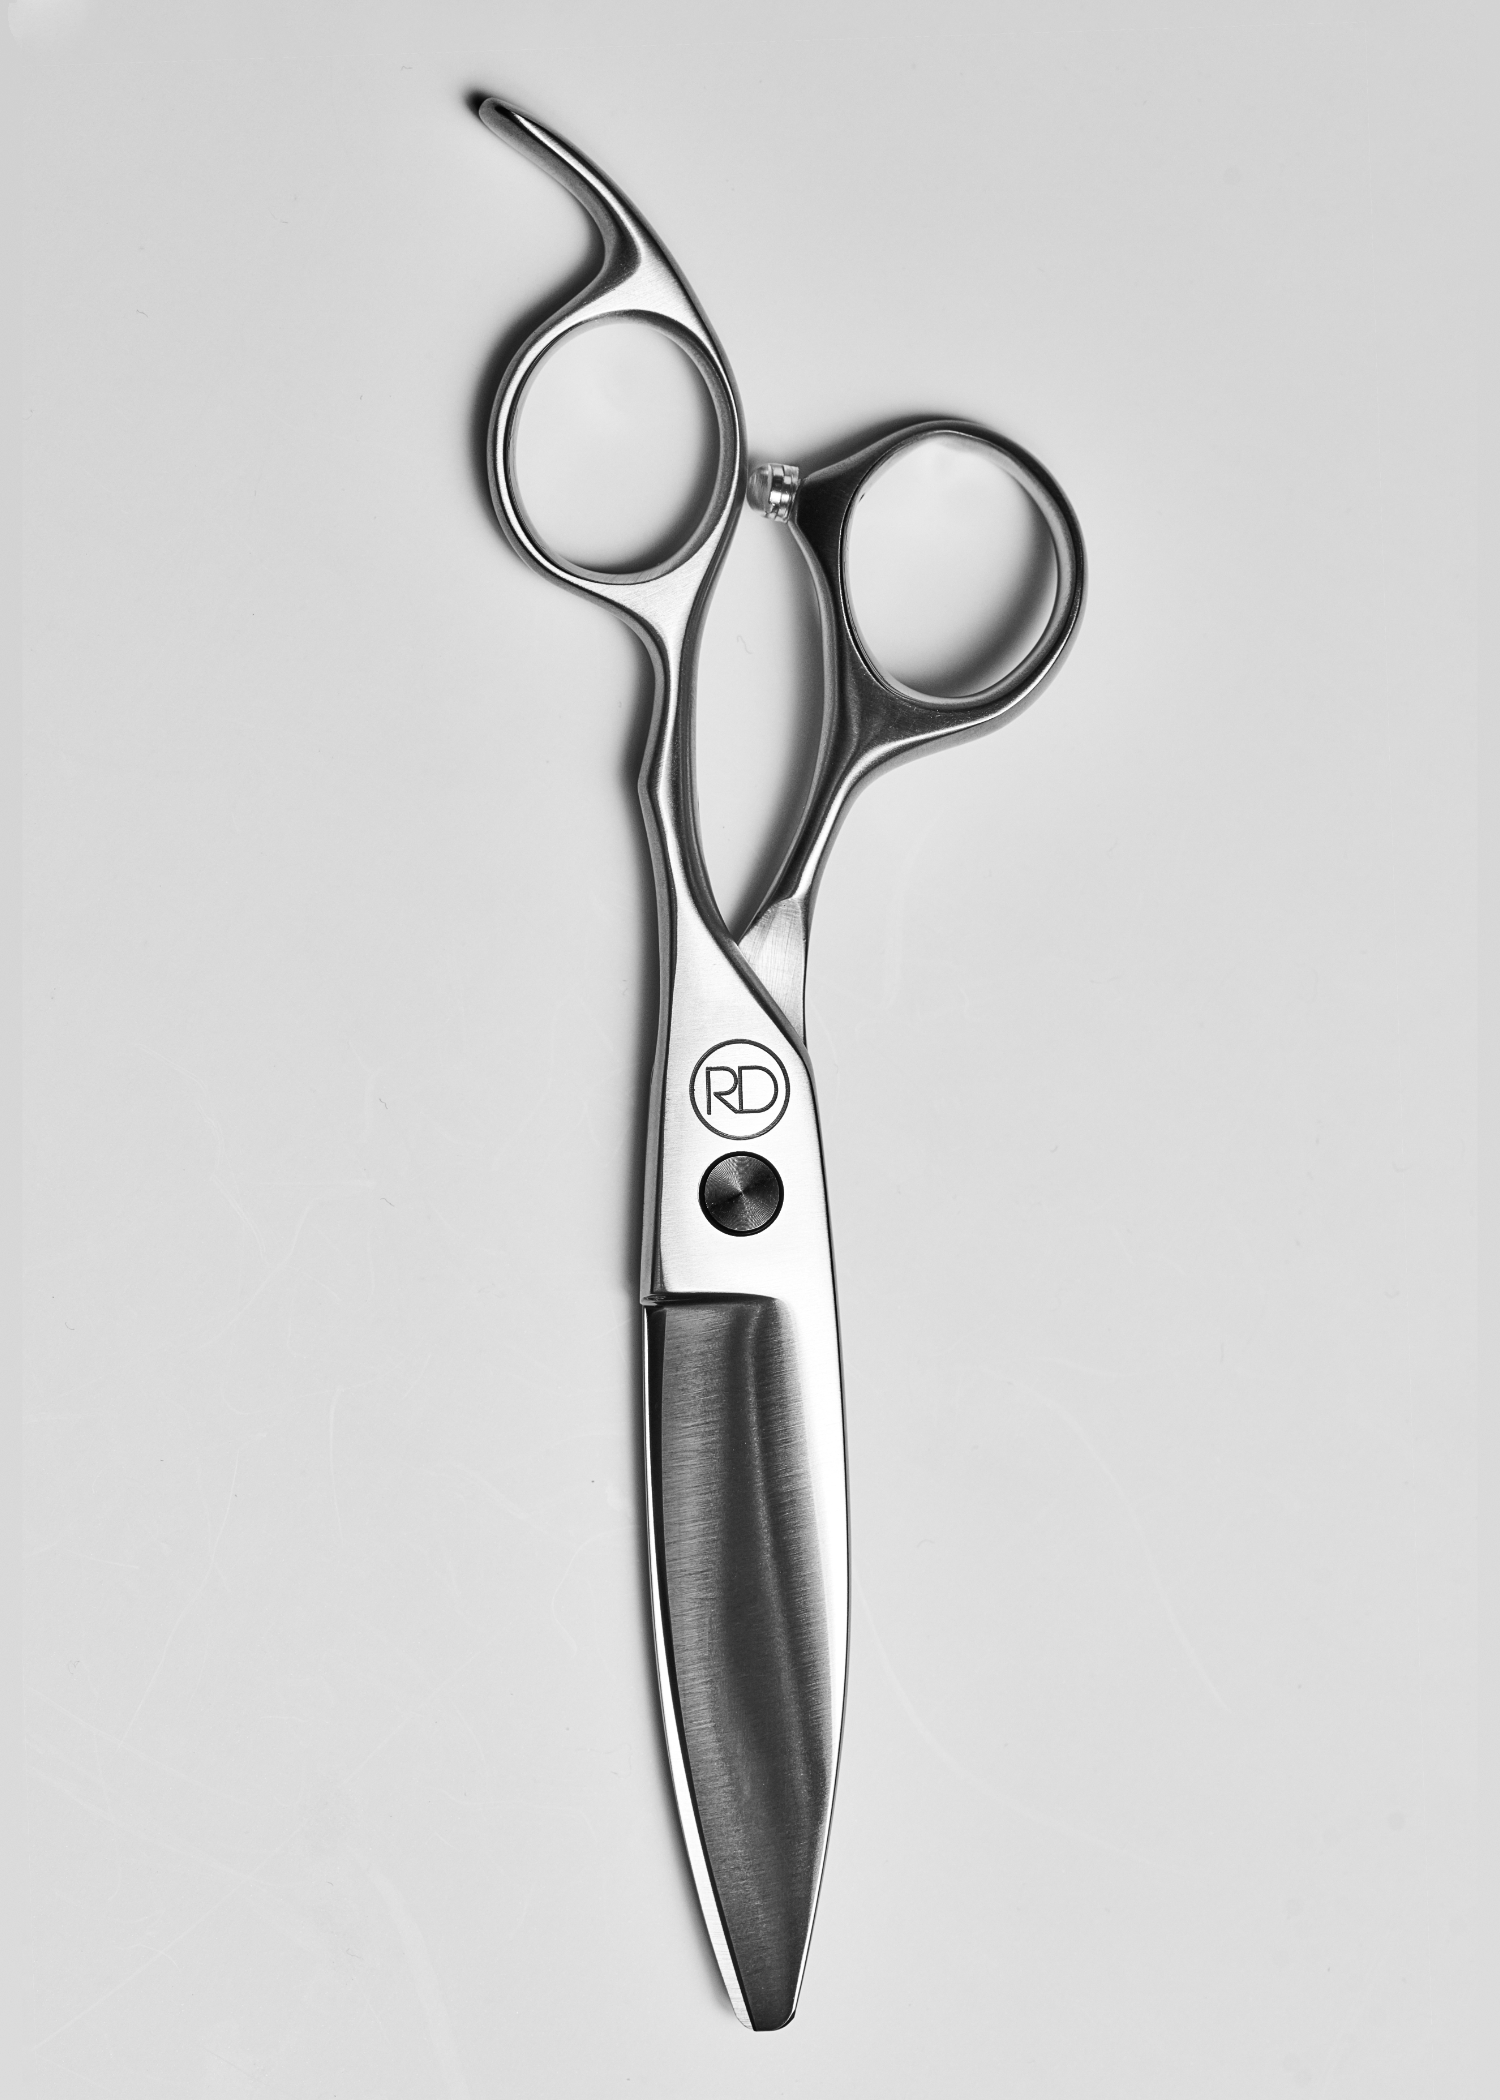 ARID - RHODE.PRO hair cutting scissors shears